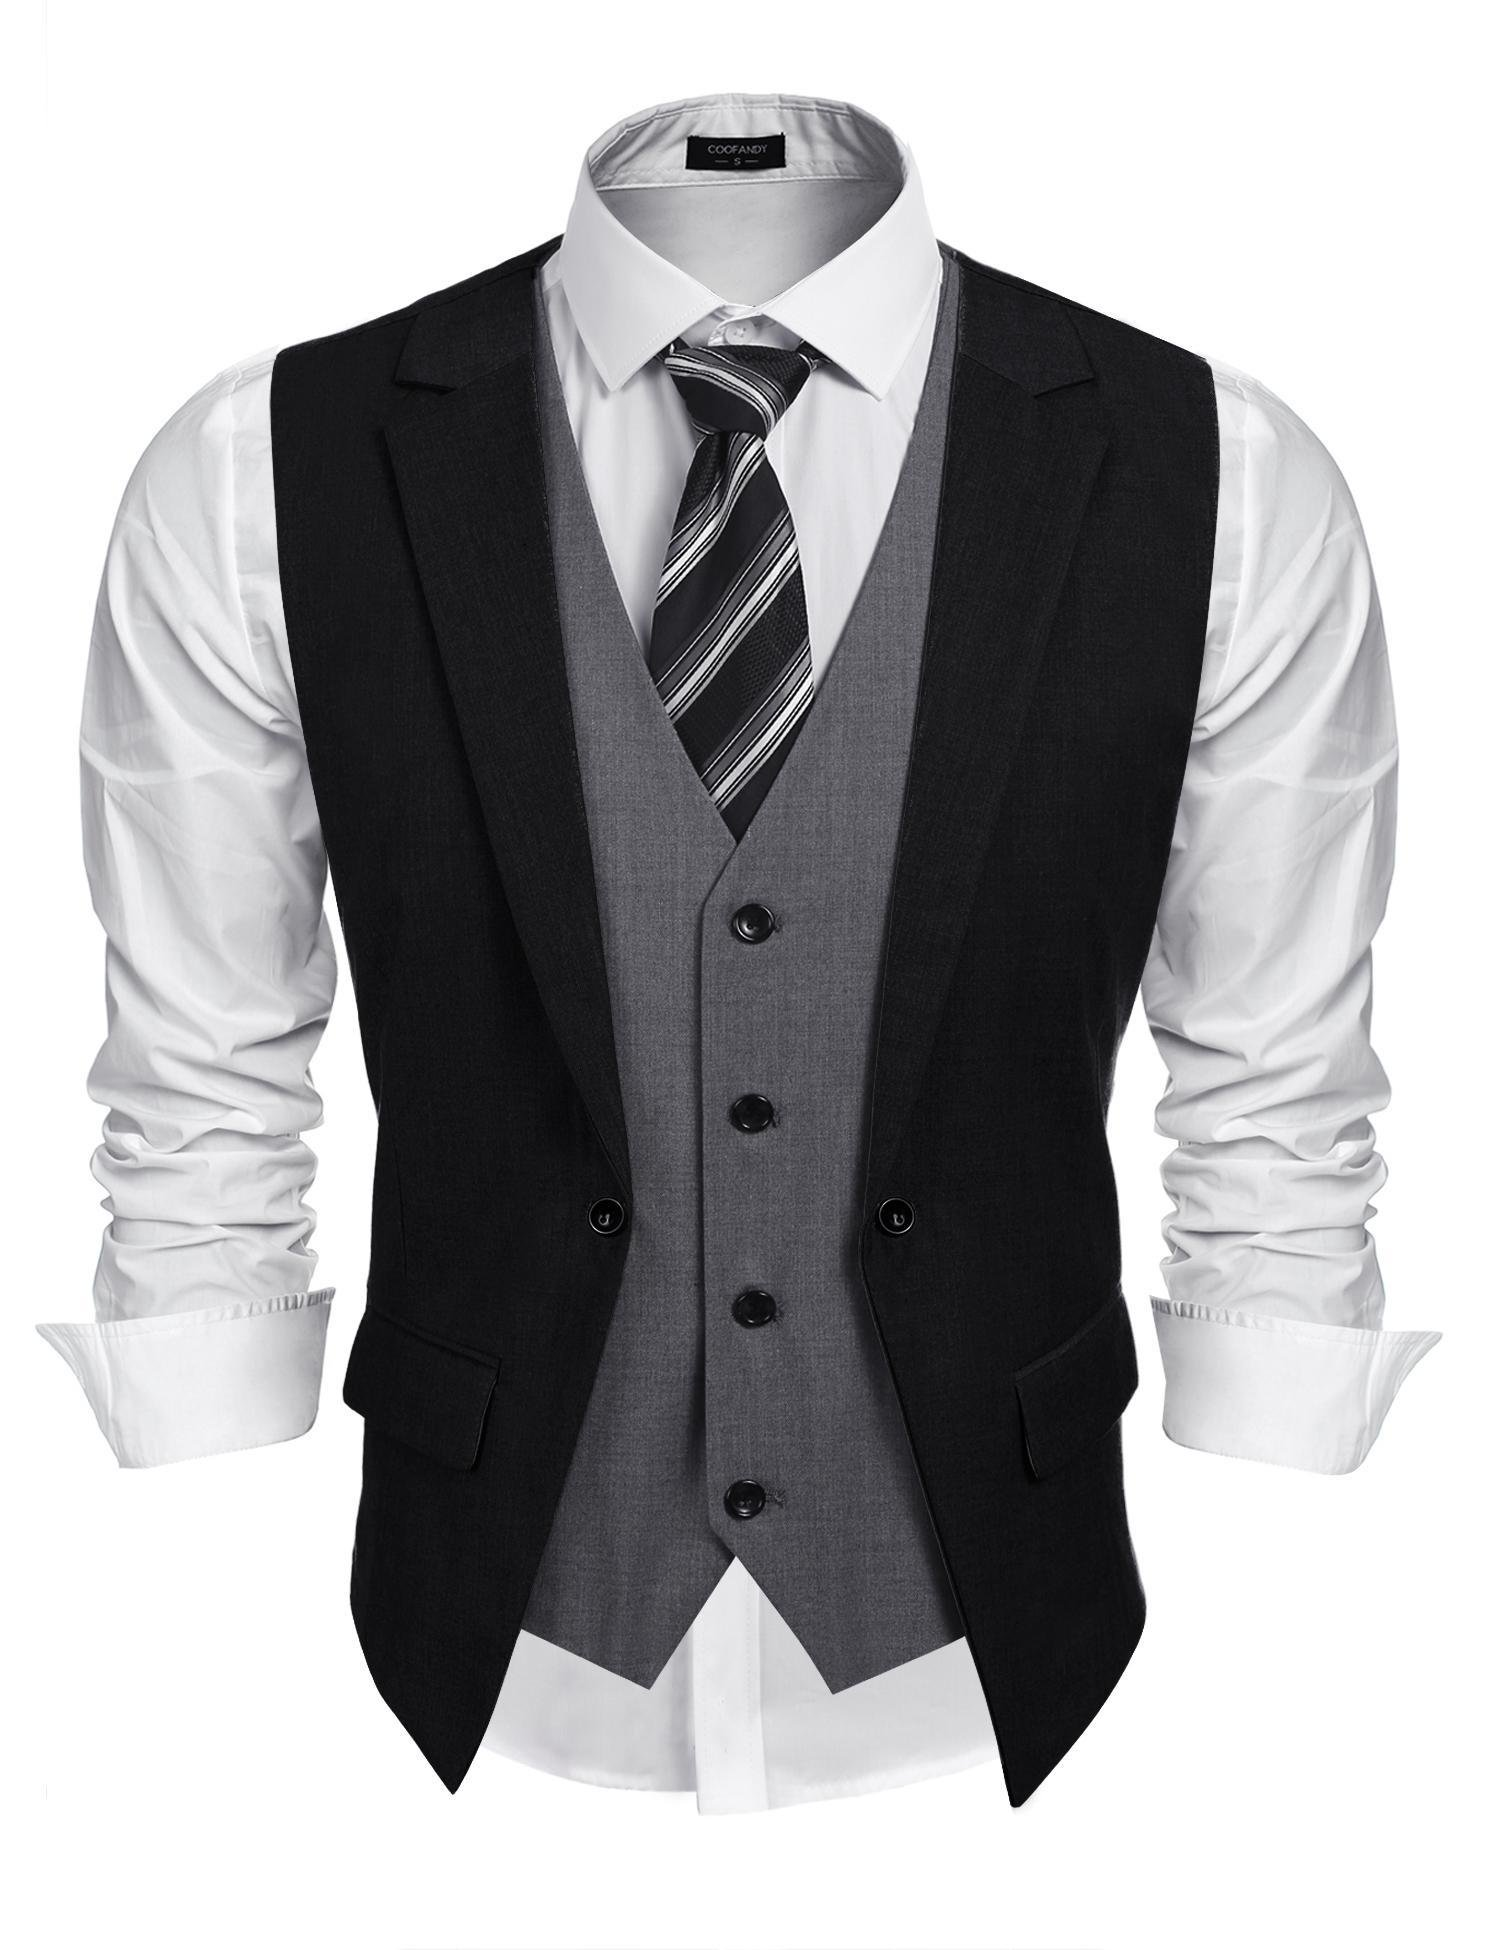 Coofandy Mens Formal Fashion Layered Vest Waistcoat Dress Vest, Black, Medium by COOFANDY